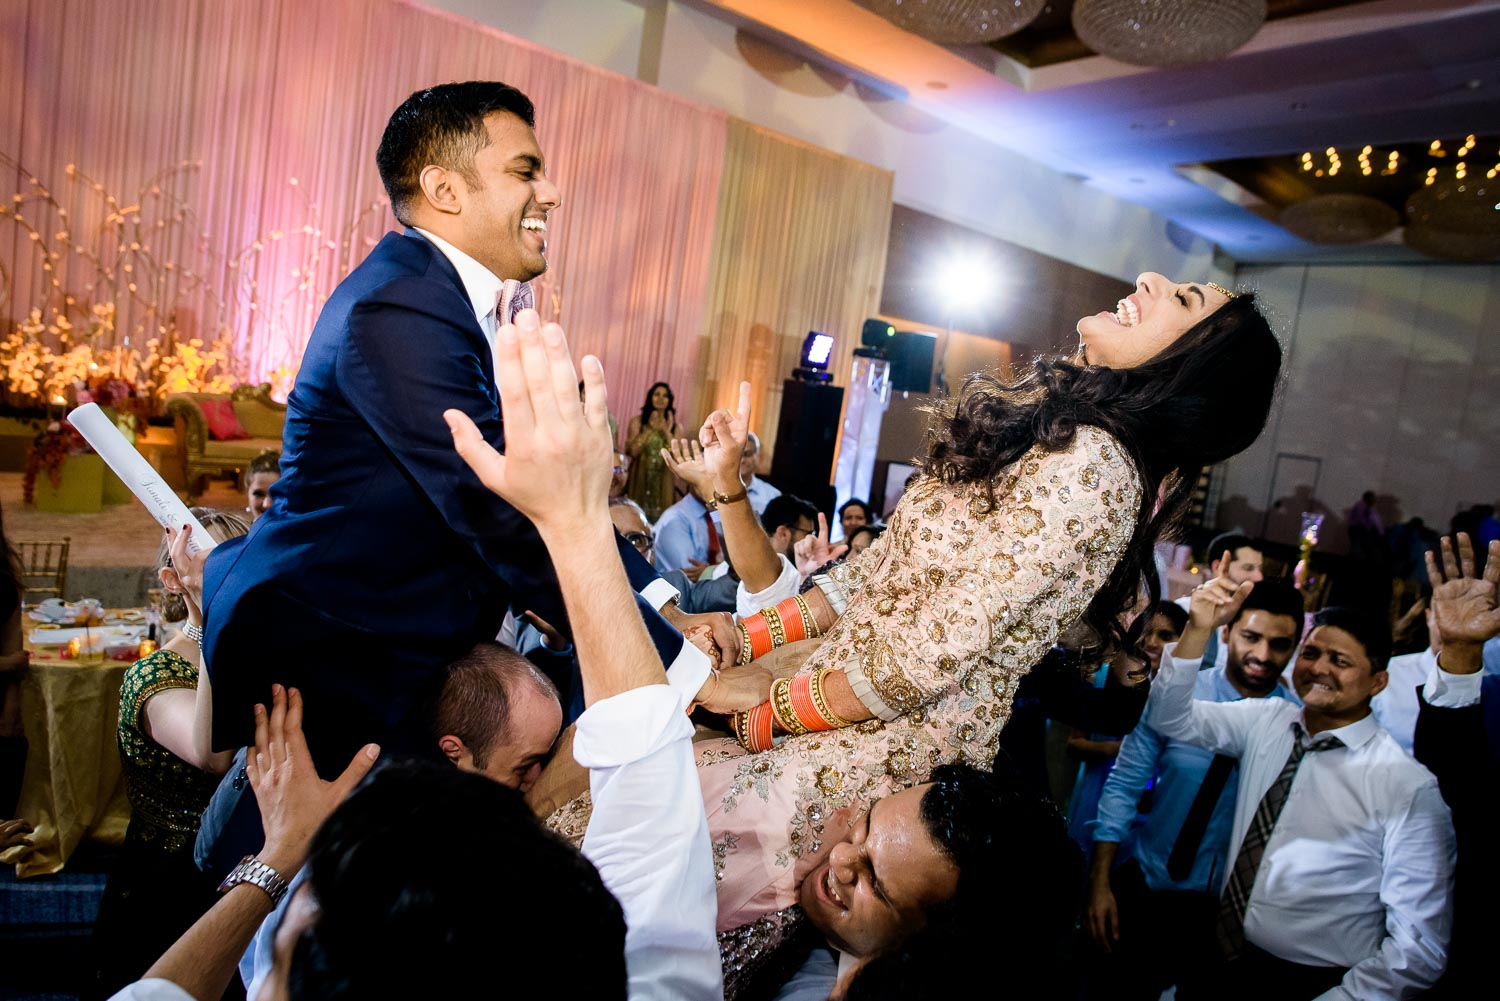 Bride and groom raised in the air during a Renaissance Schaumburg Convention Center Indian wedding reception.